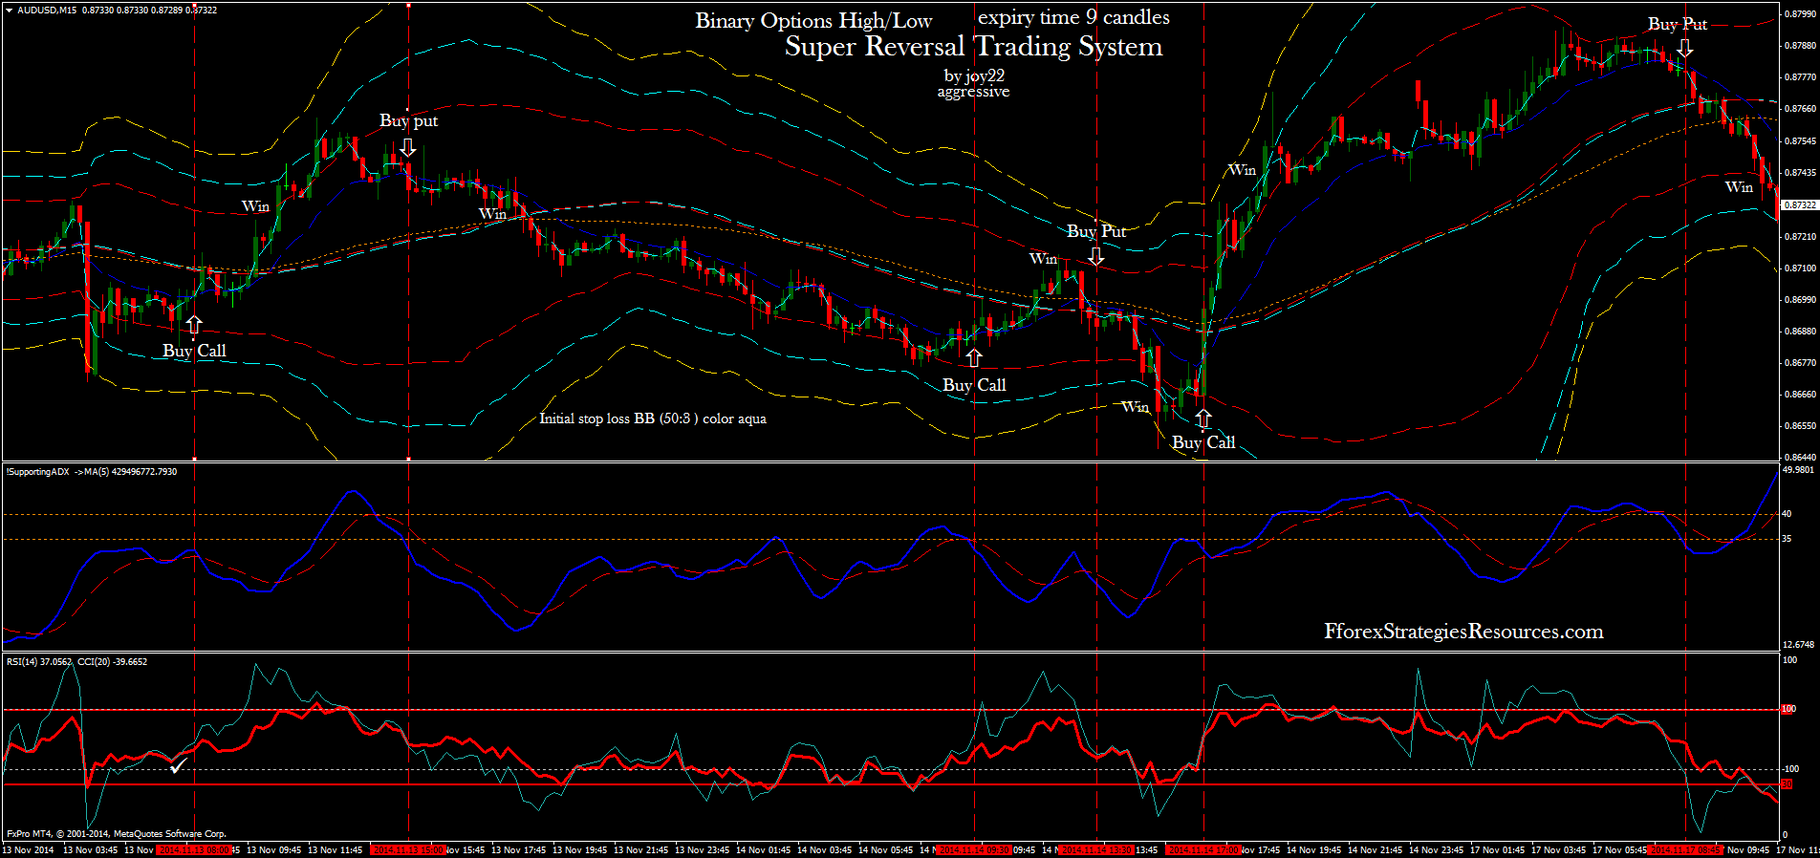 Super Reversal Trading System - Forex Strategies - Forex Resources